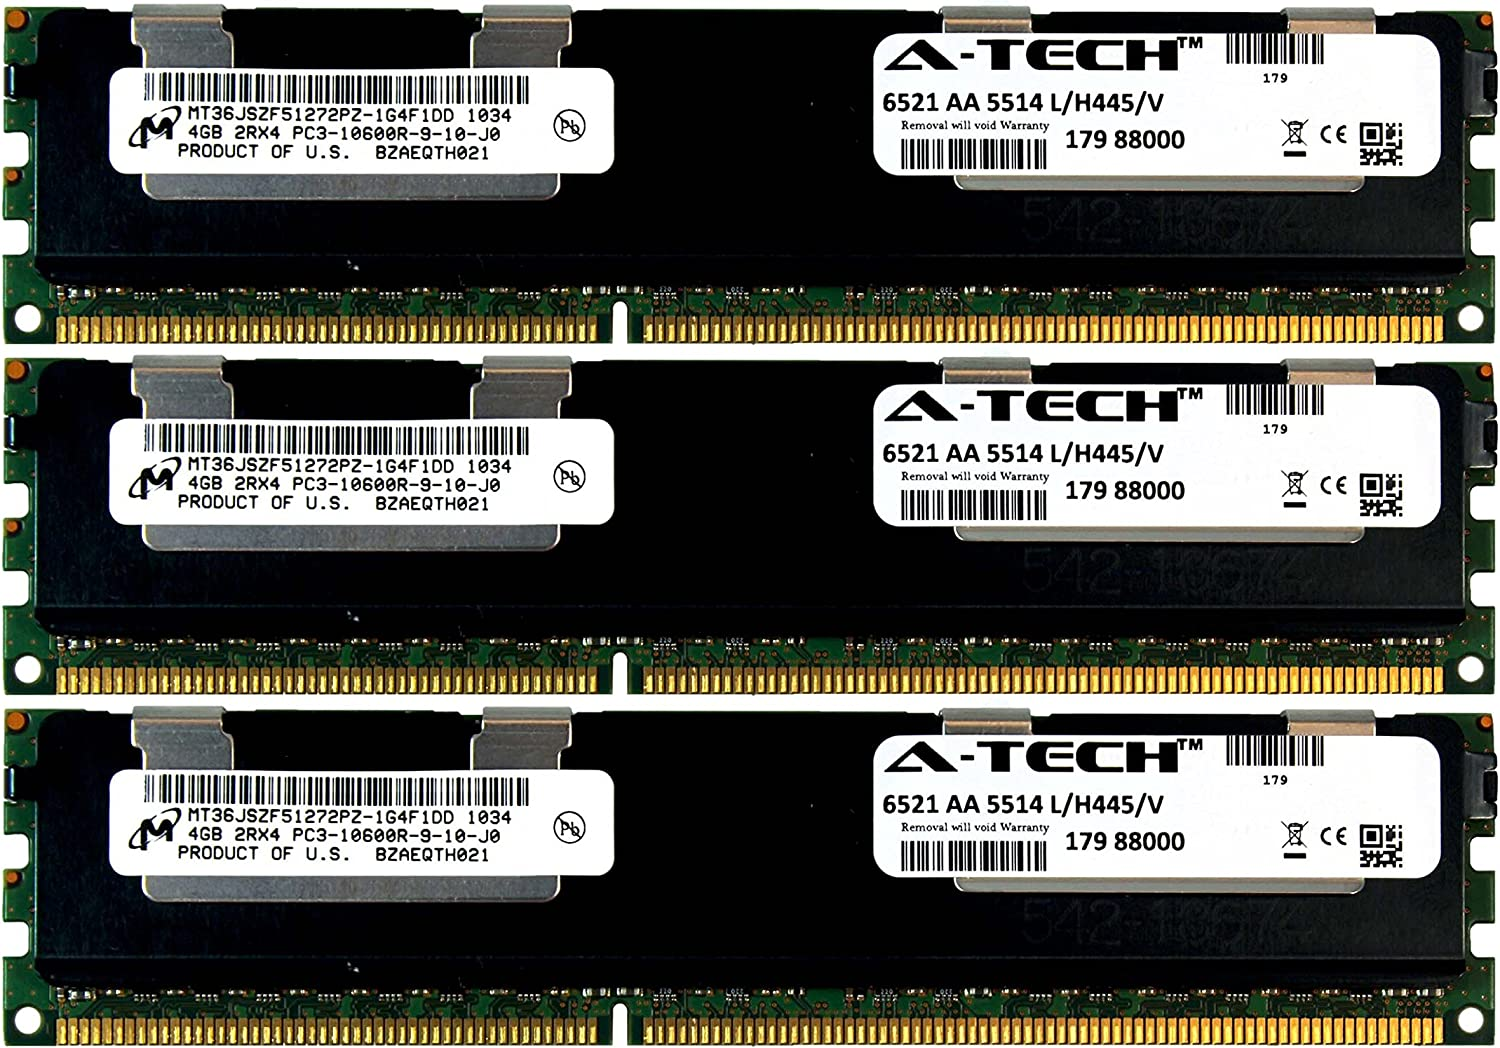 SNPMGY5TC//16G, 16GB MEMORY FOR DELL POWEREDGE R520 AND M520 SNPJDF1MC//16G